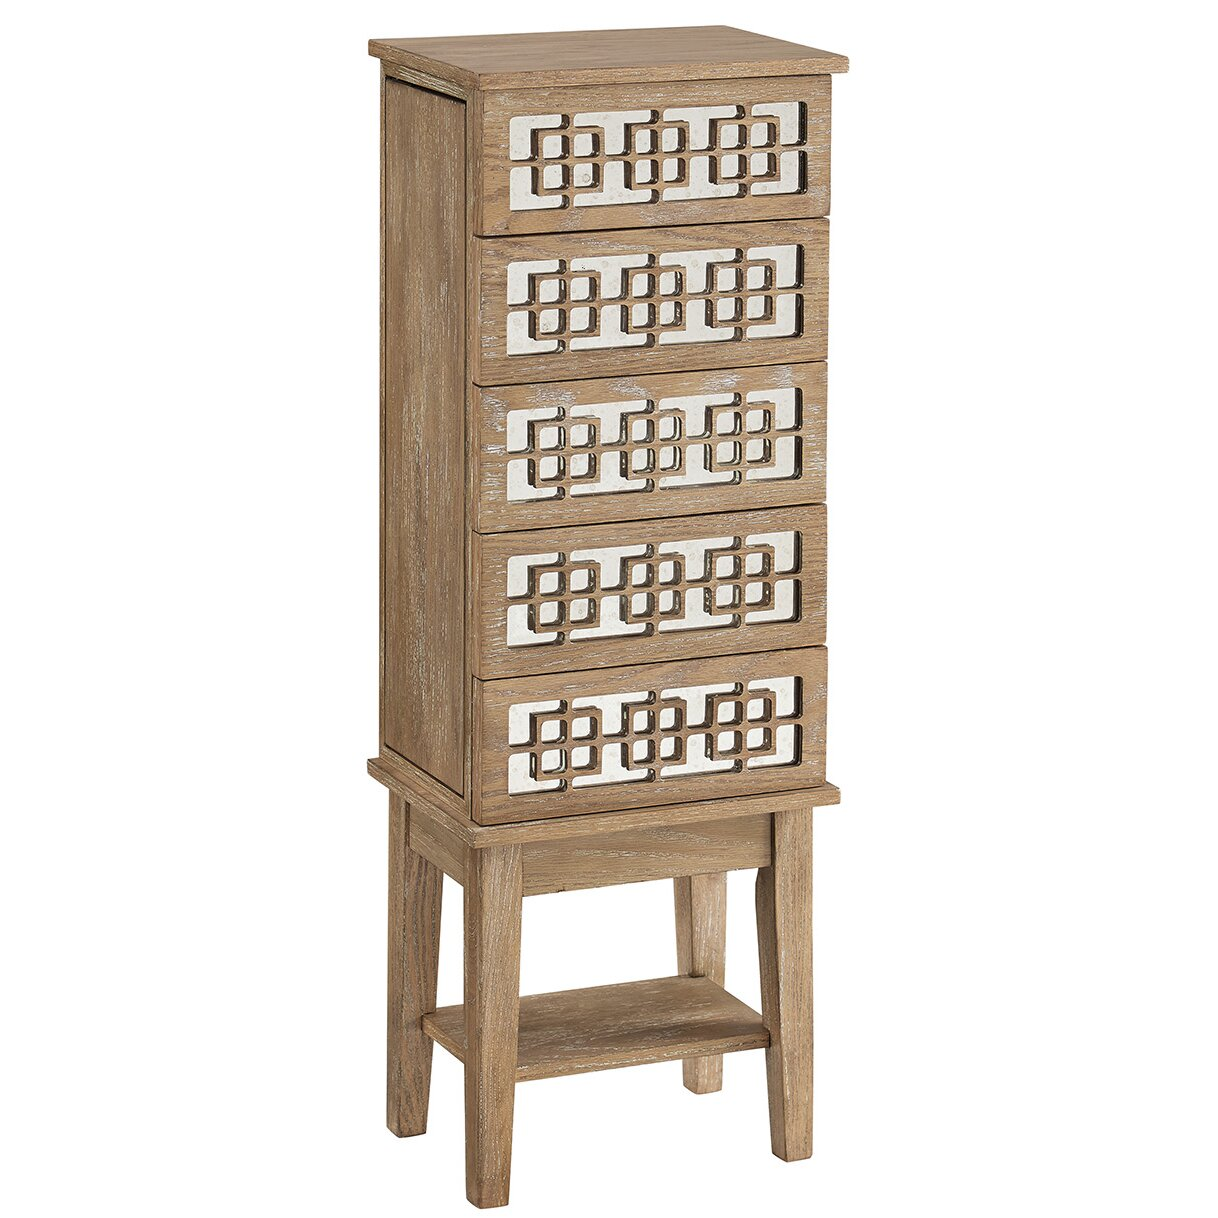 Wayfair Com Sales: Bungalow Rose Jewelry Armoire & Reviews